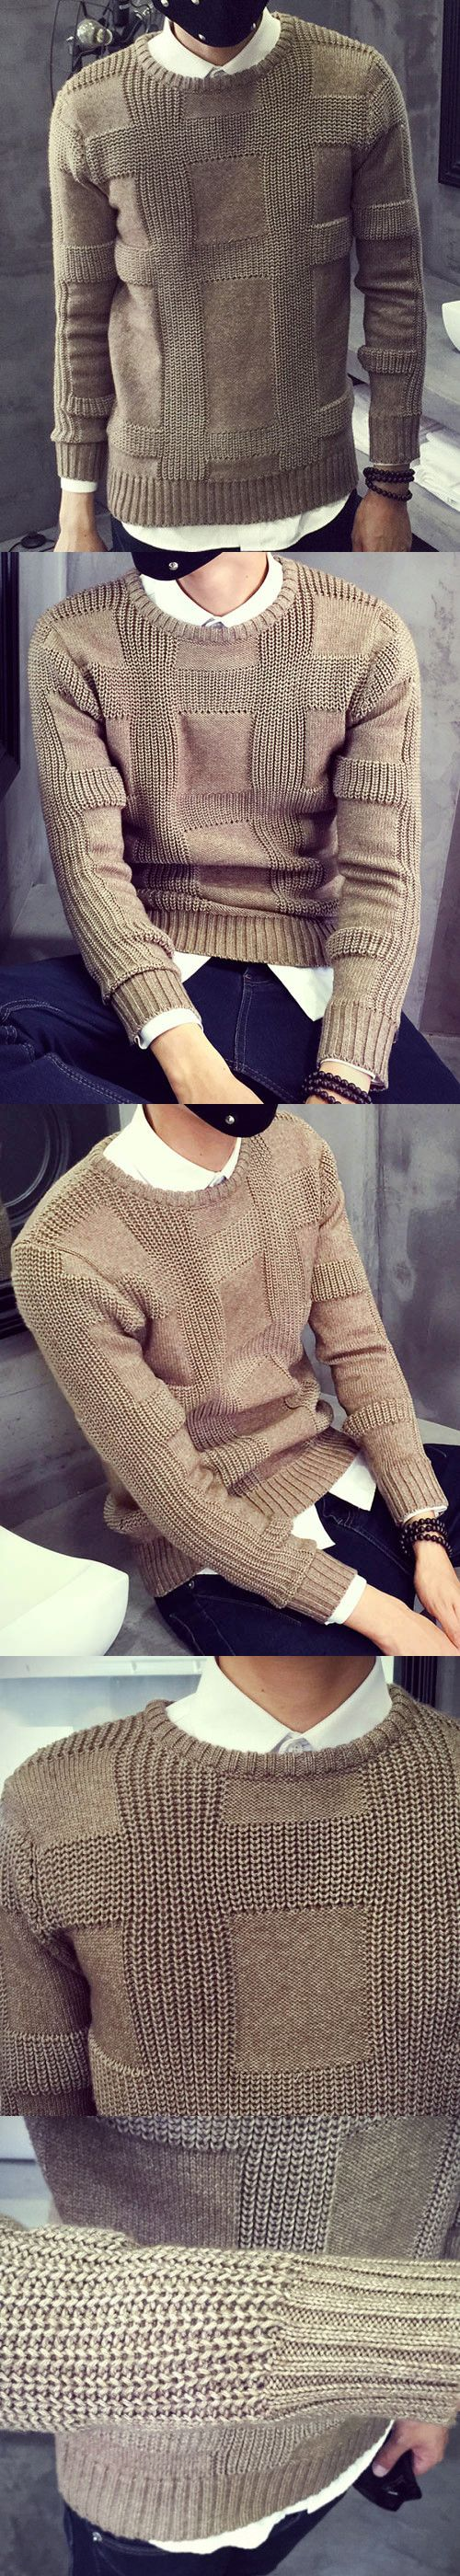 Round Neck Solid Color Jacquard Splicing Long Sleeve Sweater For Men